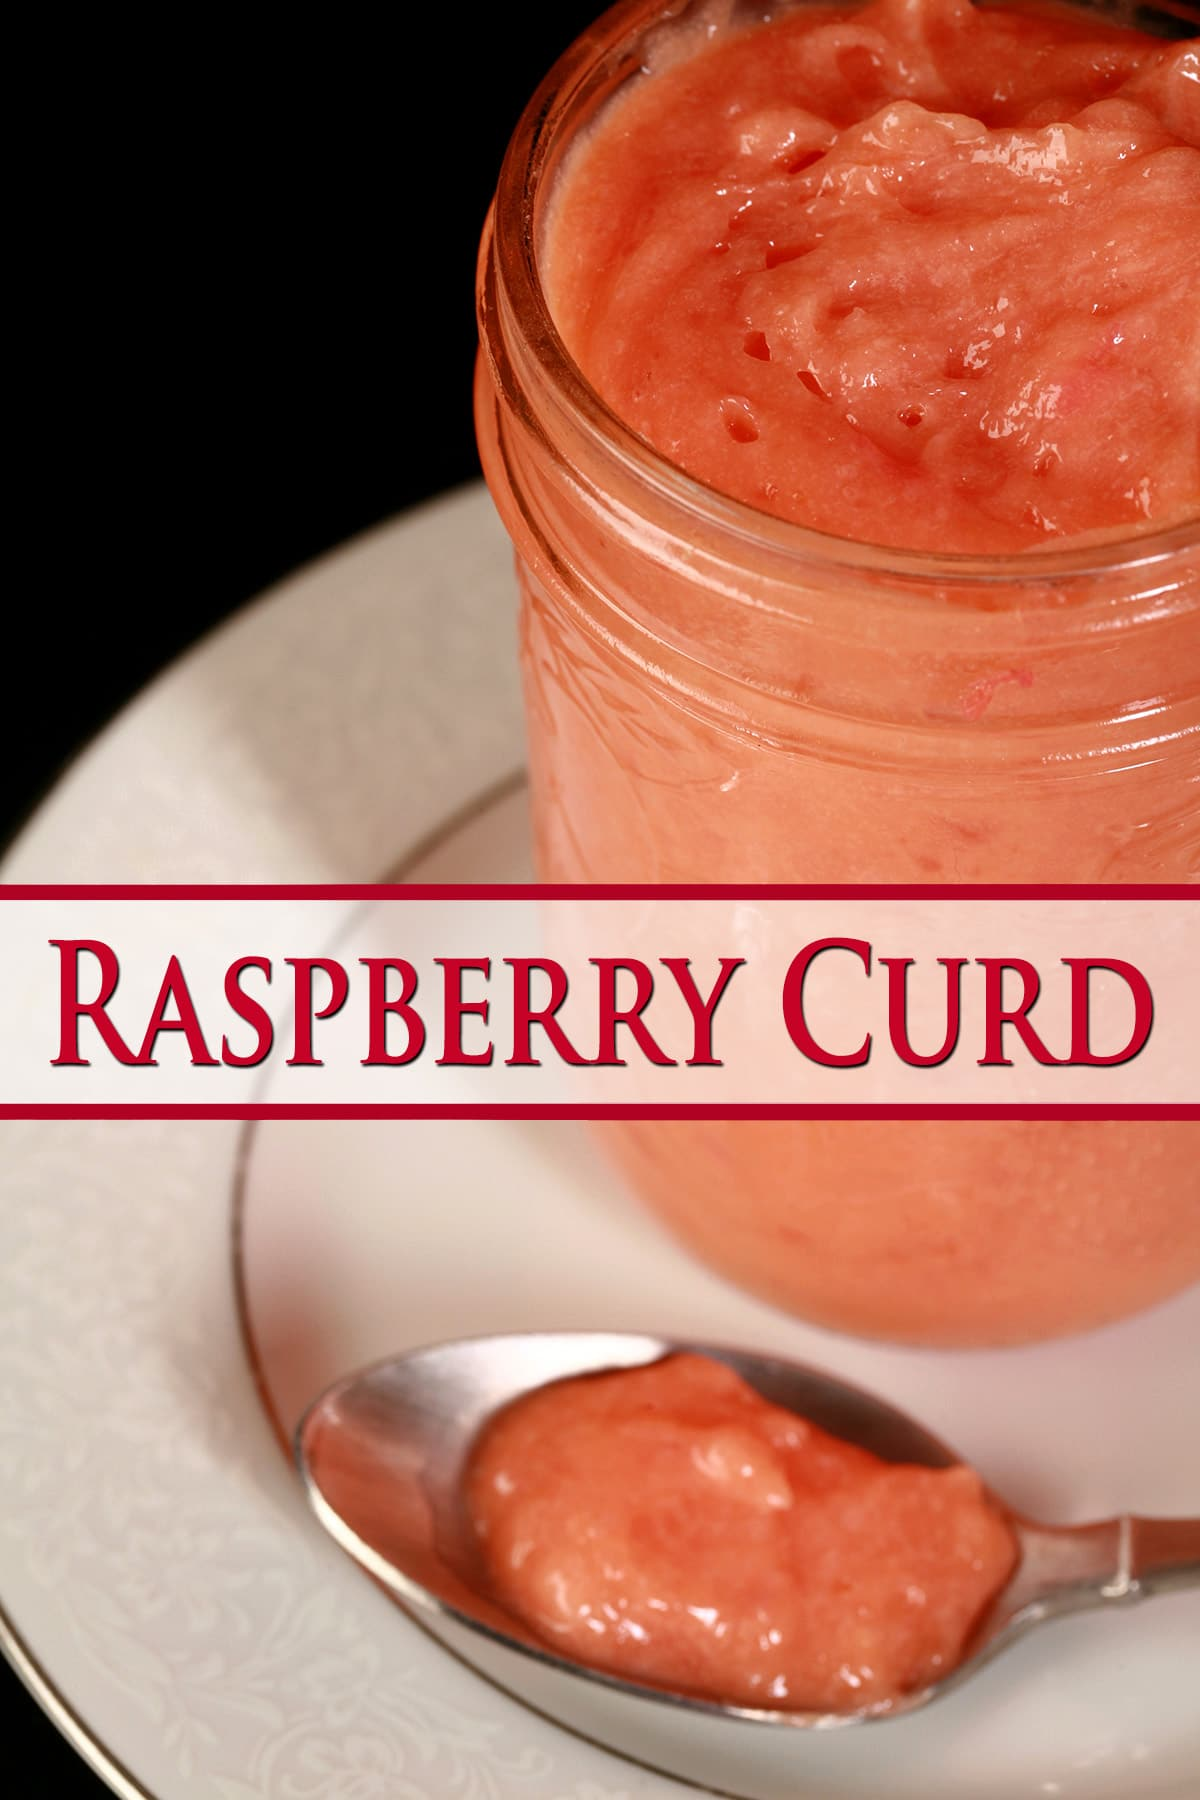 A jam jar of raspberry curd on a plate, next to a spoon with the pink curd on it.